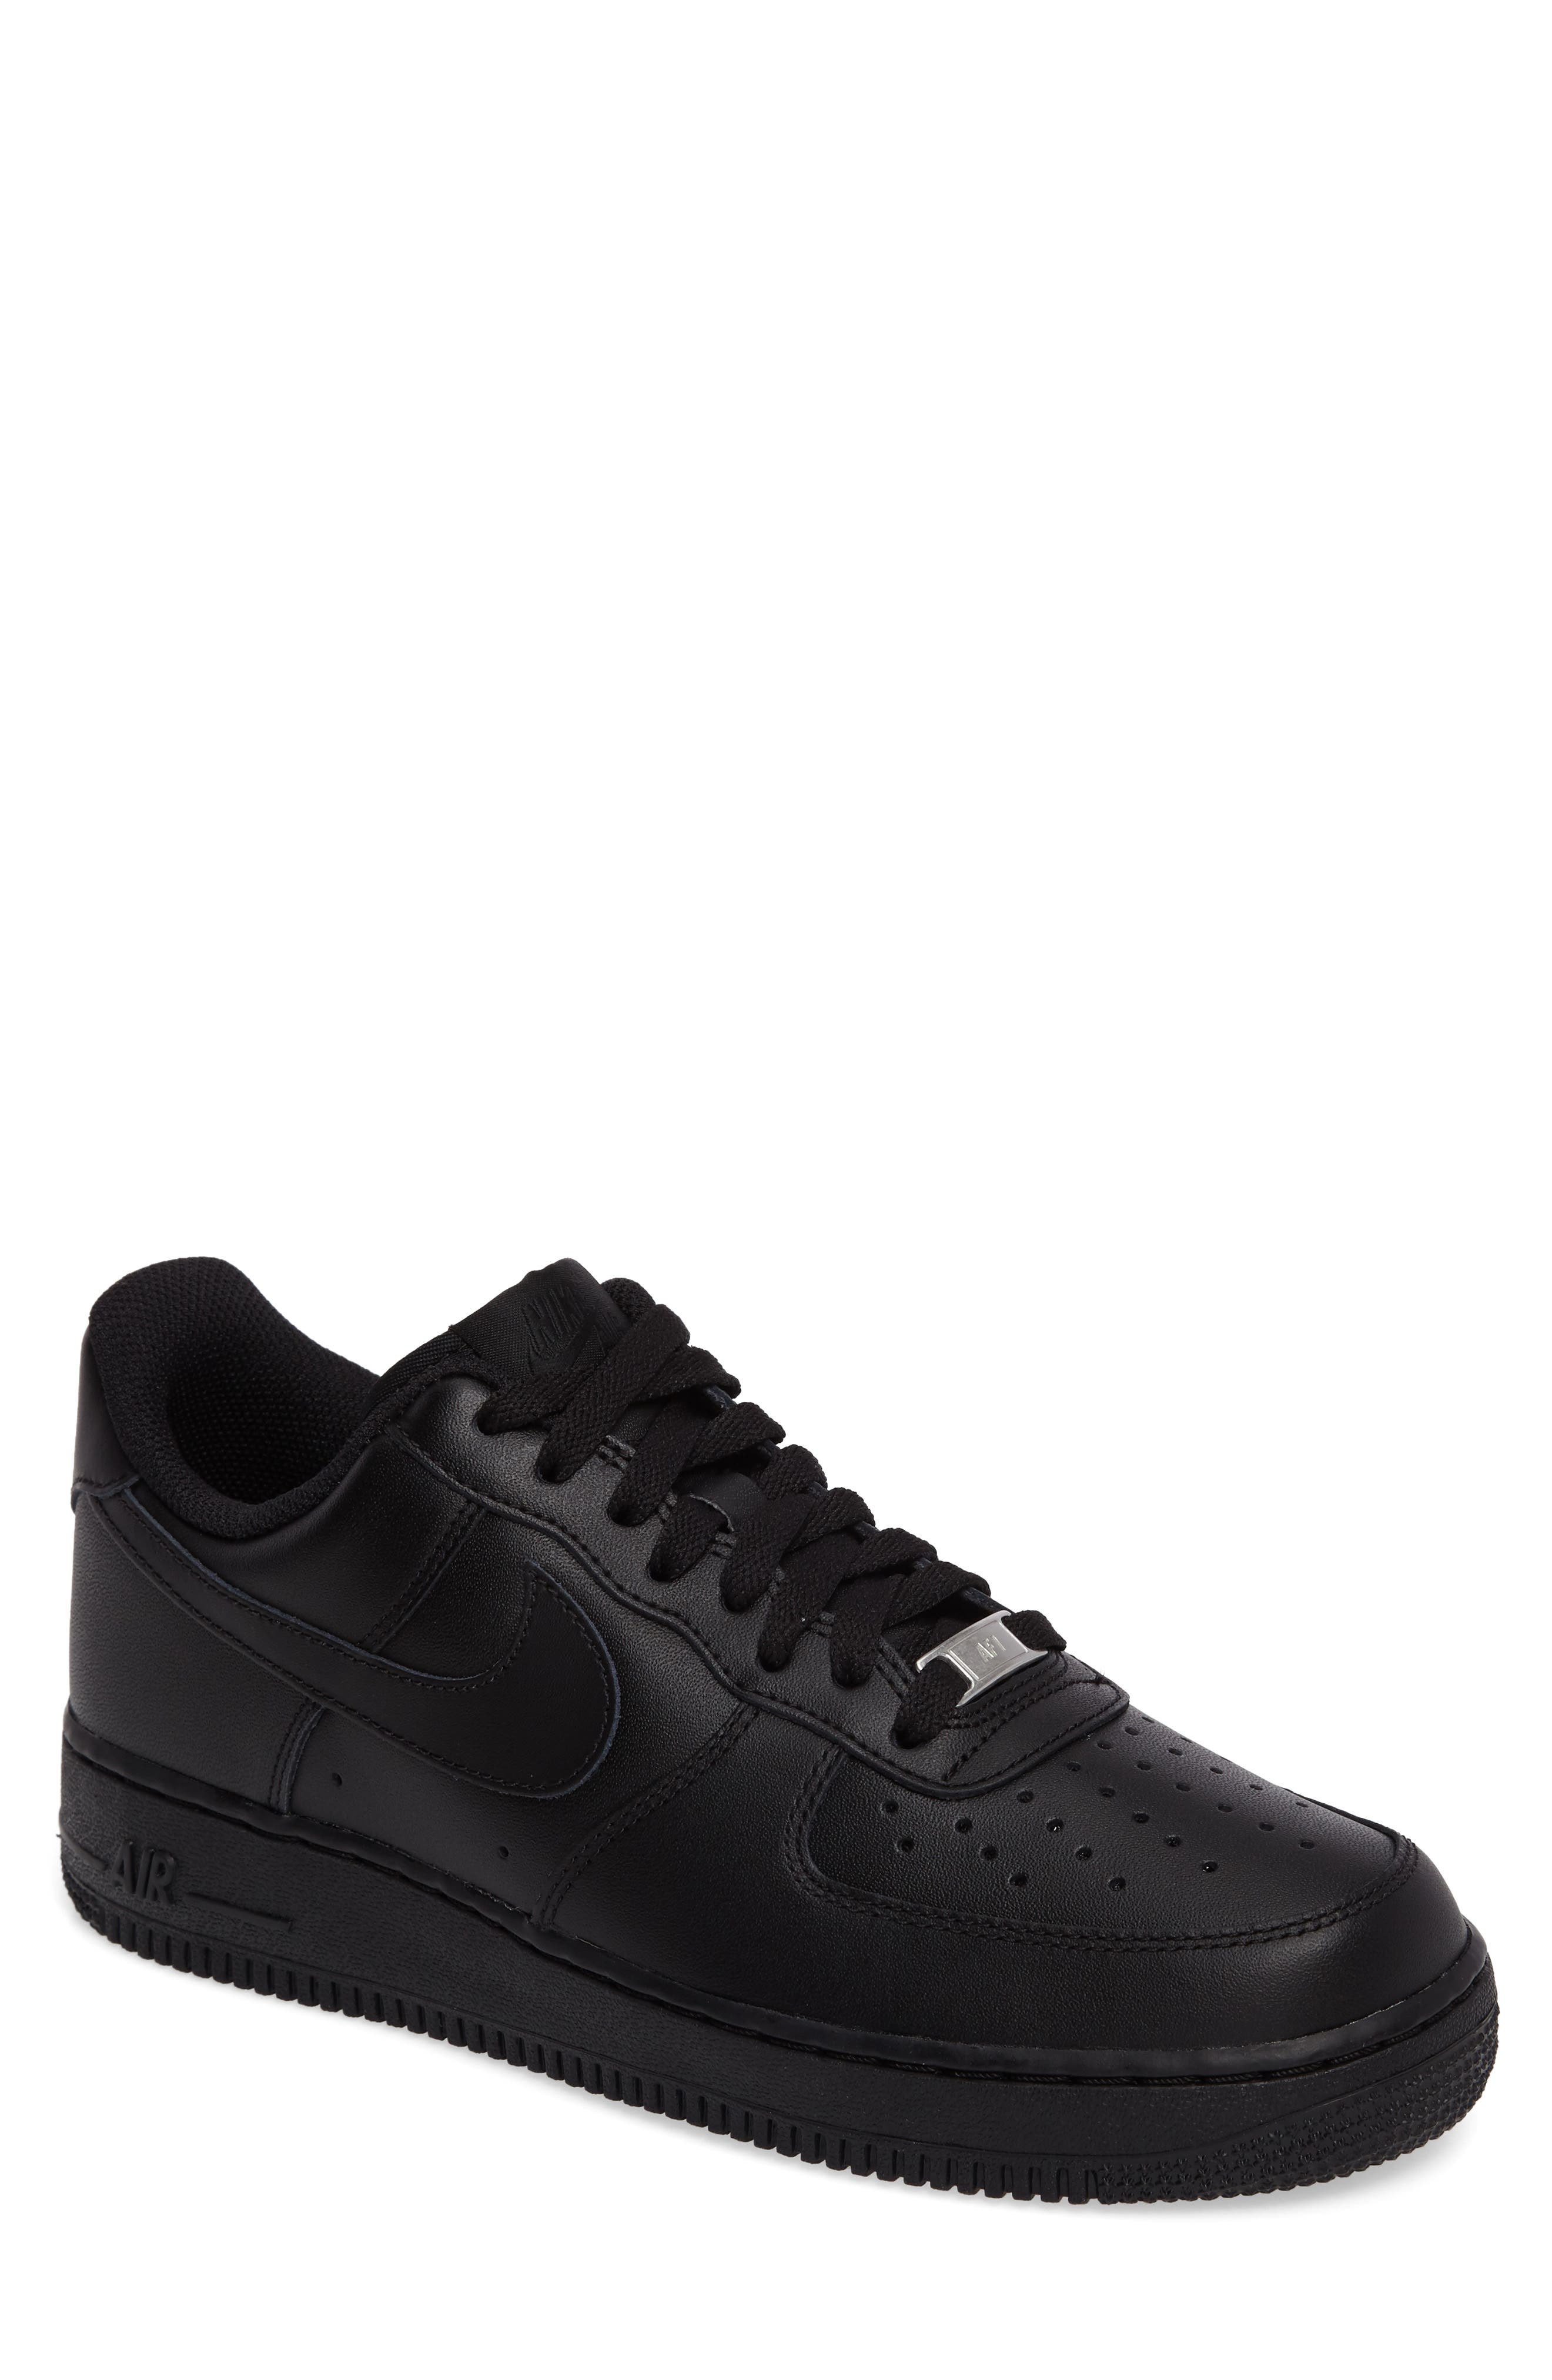 Air Force 1 '07 Sneaker,                         Main,                         color, Black/ Black